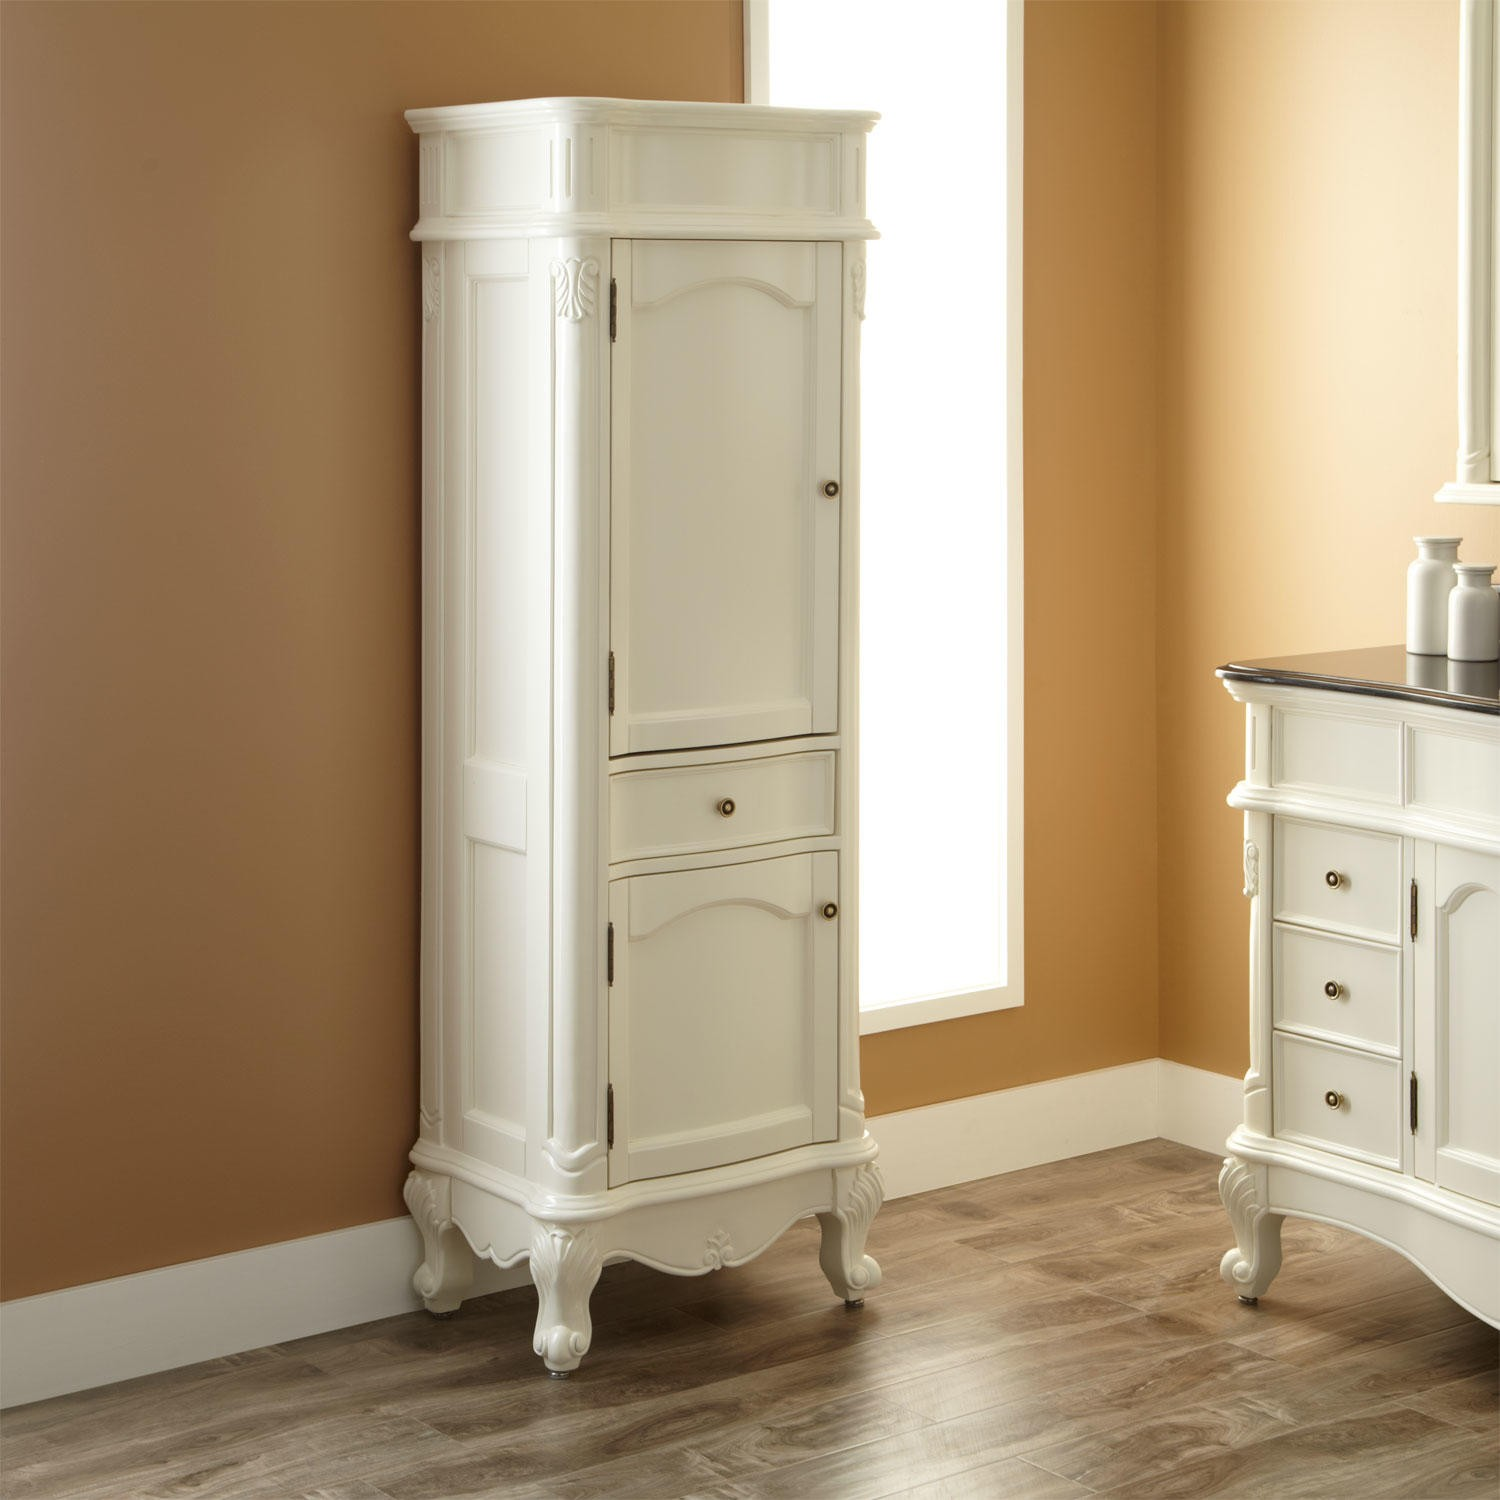 free standing linen cabinets for bathroom best free standing linen closet homesfeed QLCDEGZ